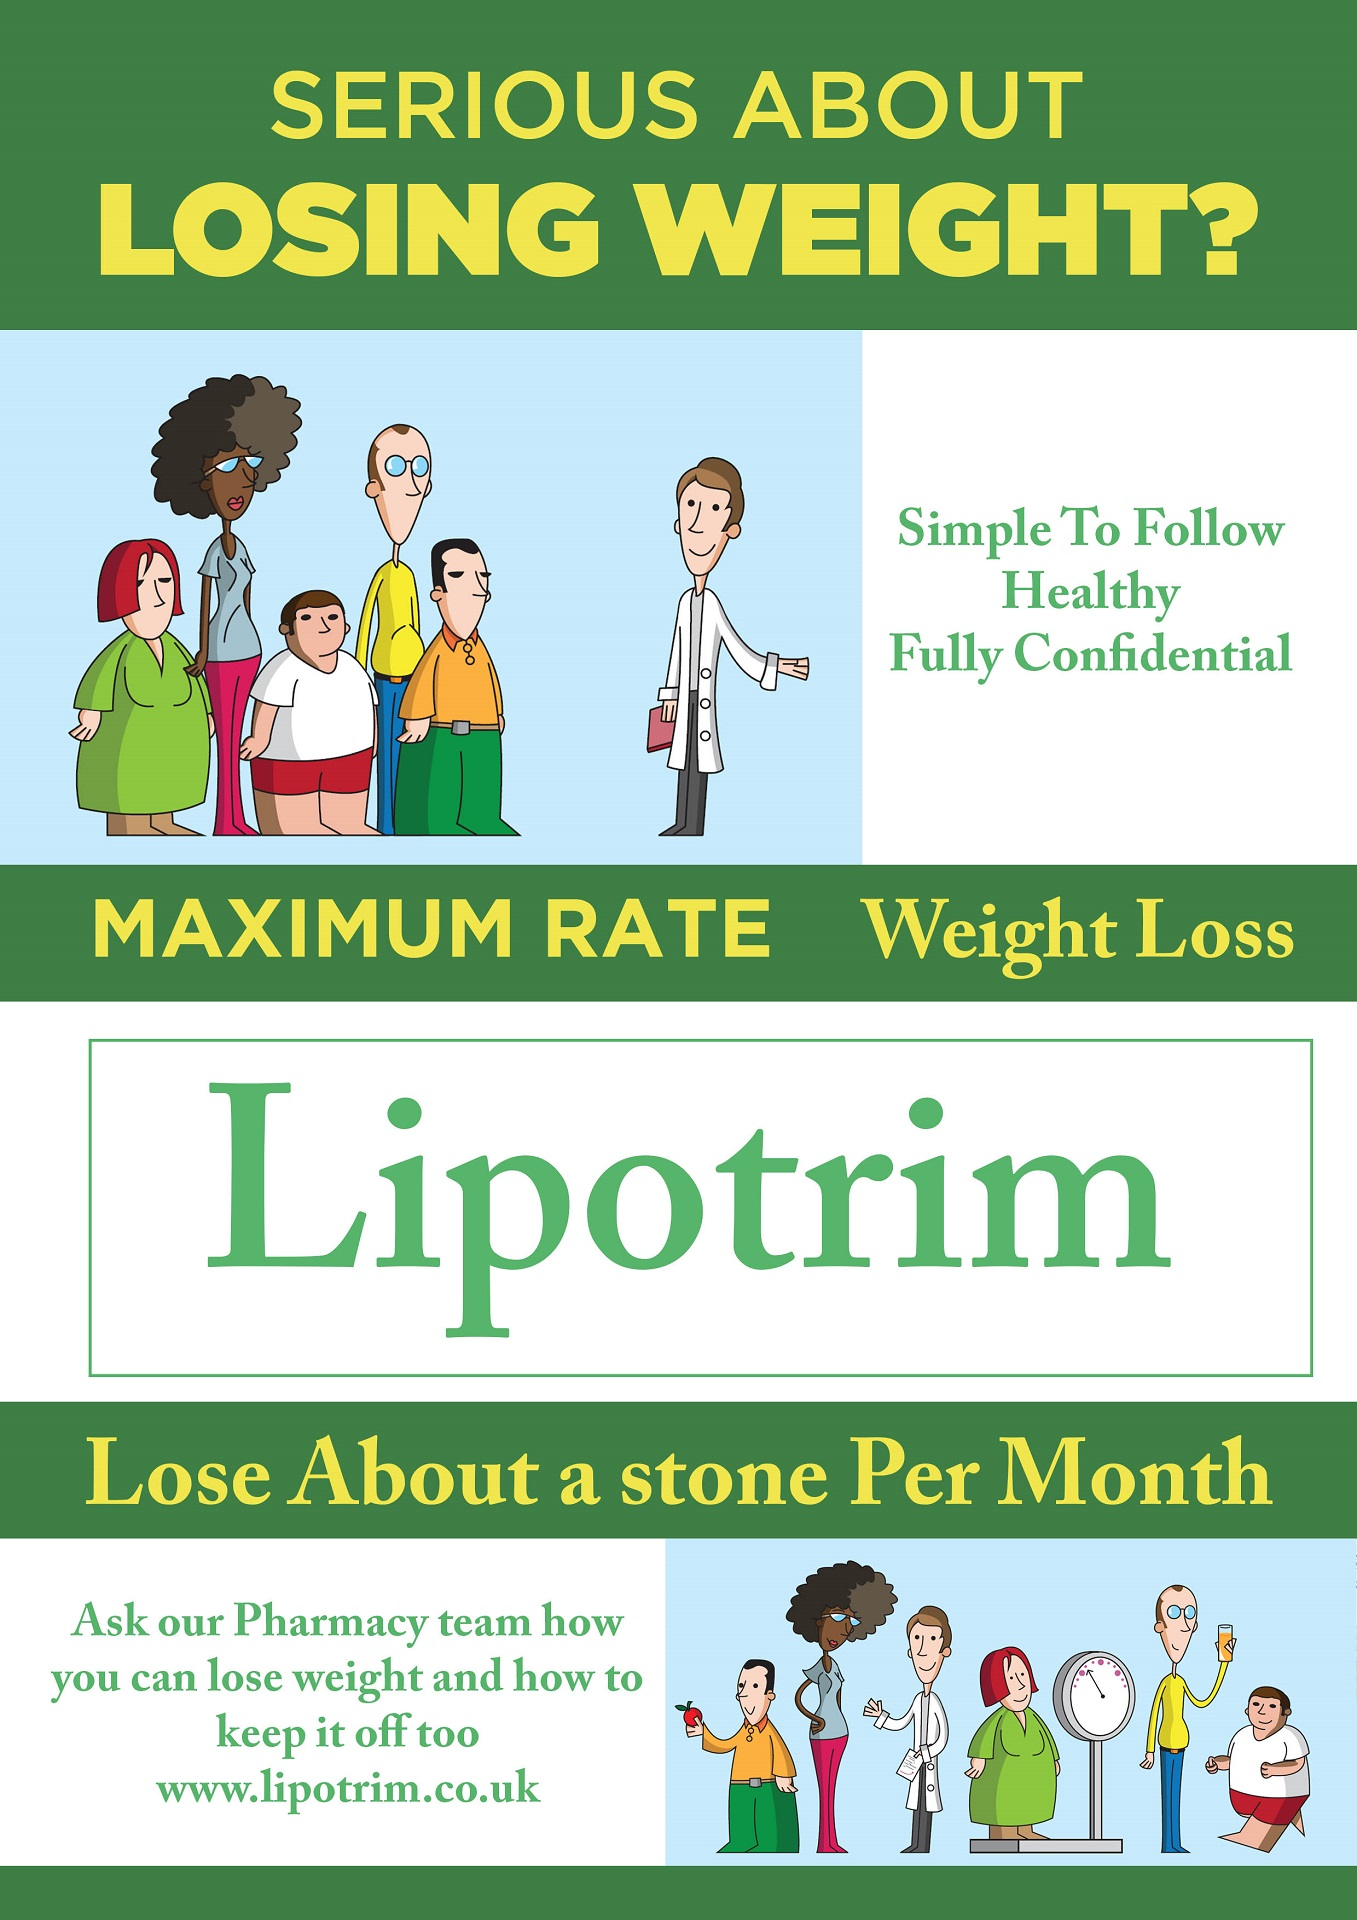 Lipotrim shop posters - maximum rate weight loss